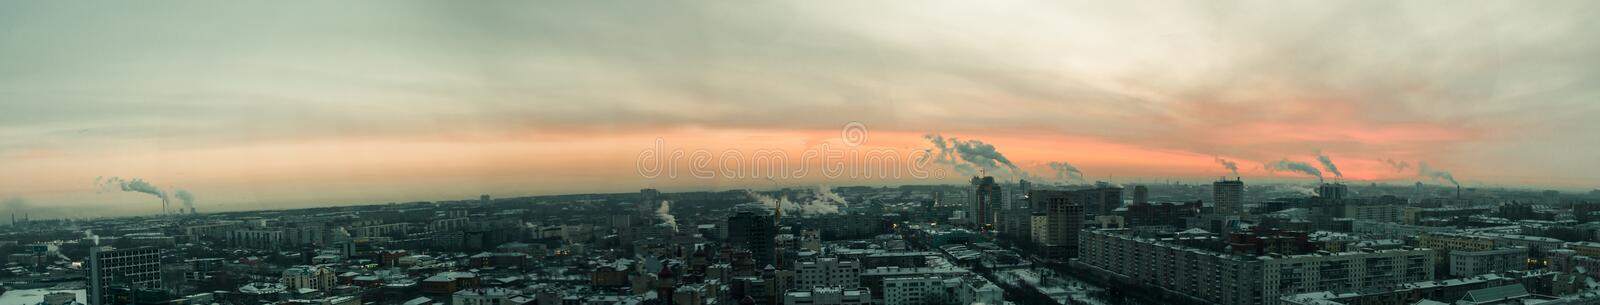 Sunrise in an industrial city royalty free stock images